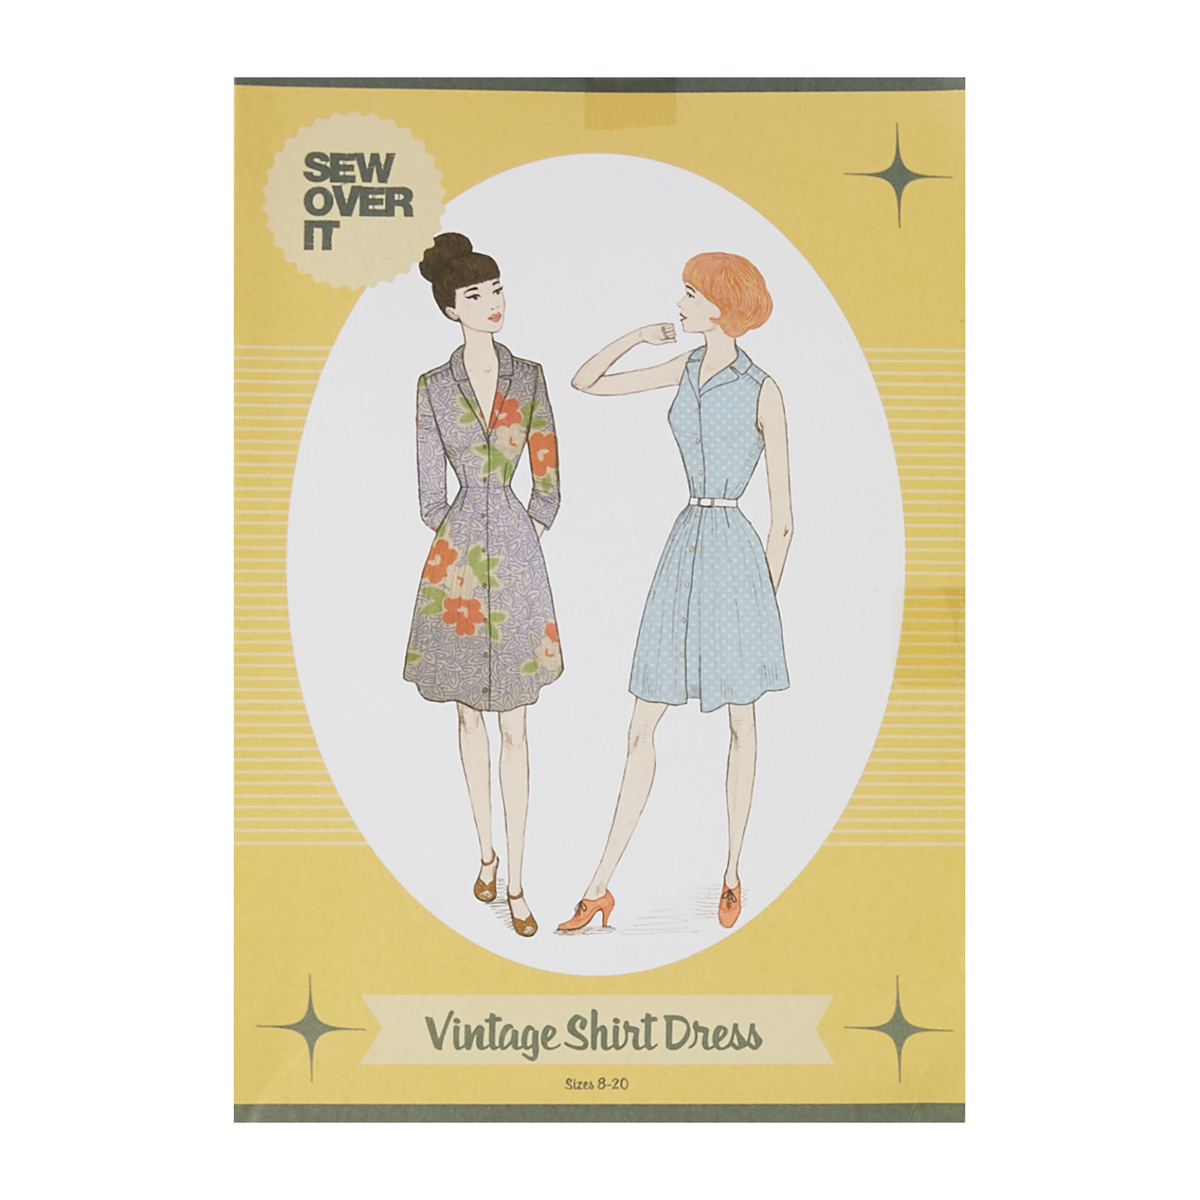 1950s Sewing Patterns | Swing and Wiggle Dresses, Skirts Sew Over It Vintage Shirt Dress Pattern $20.00 AT vintagedancer.com